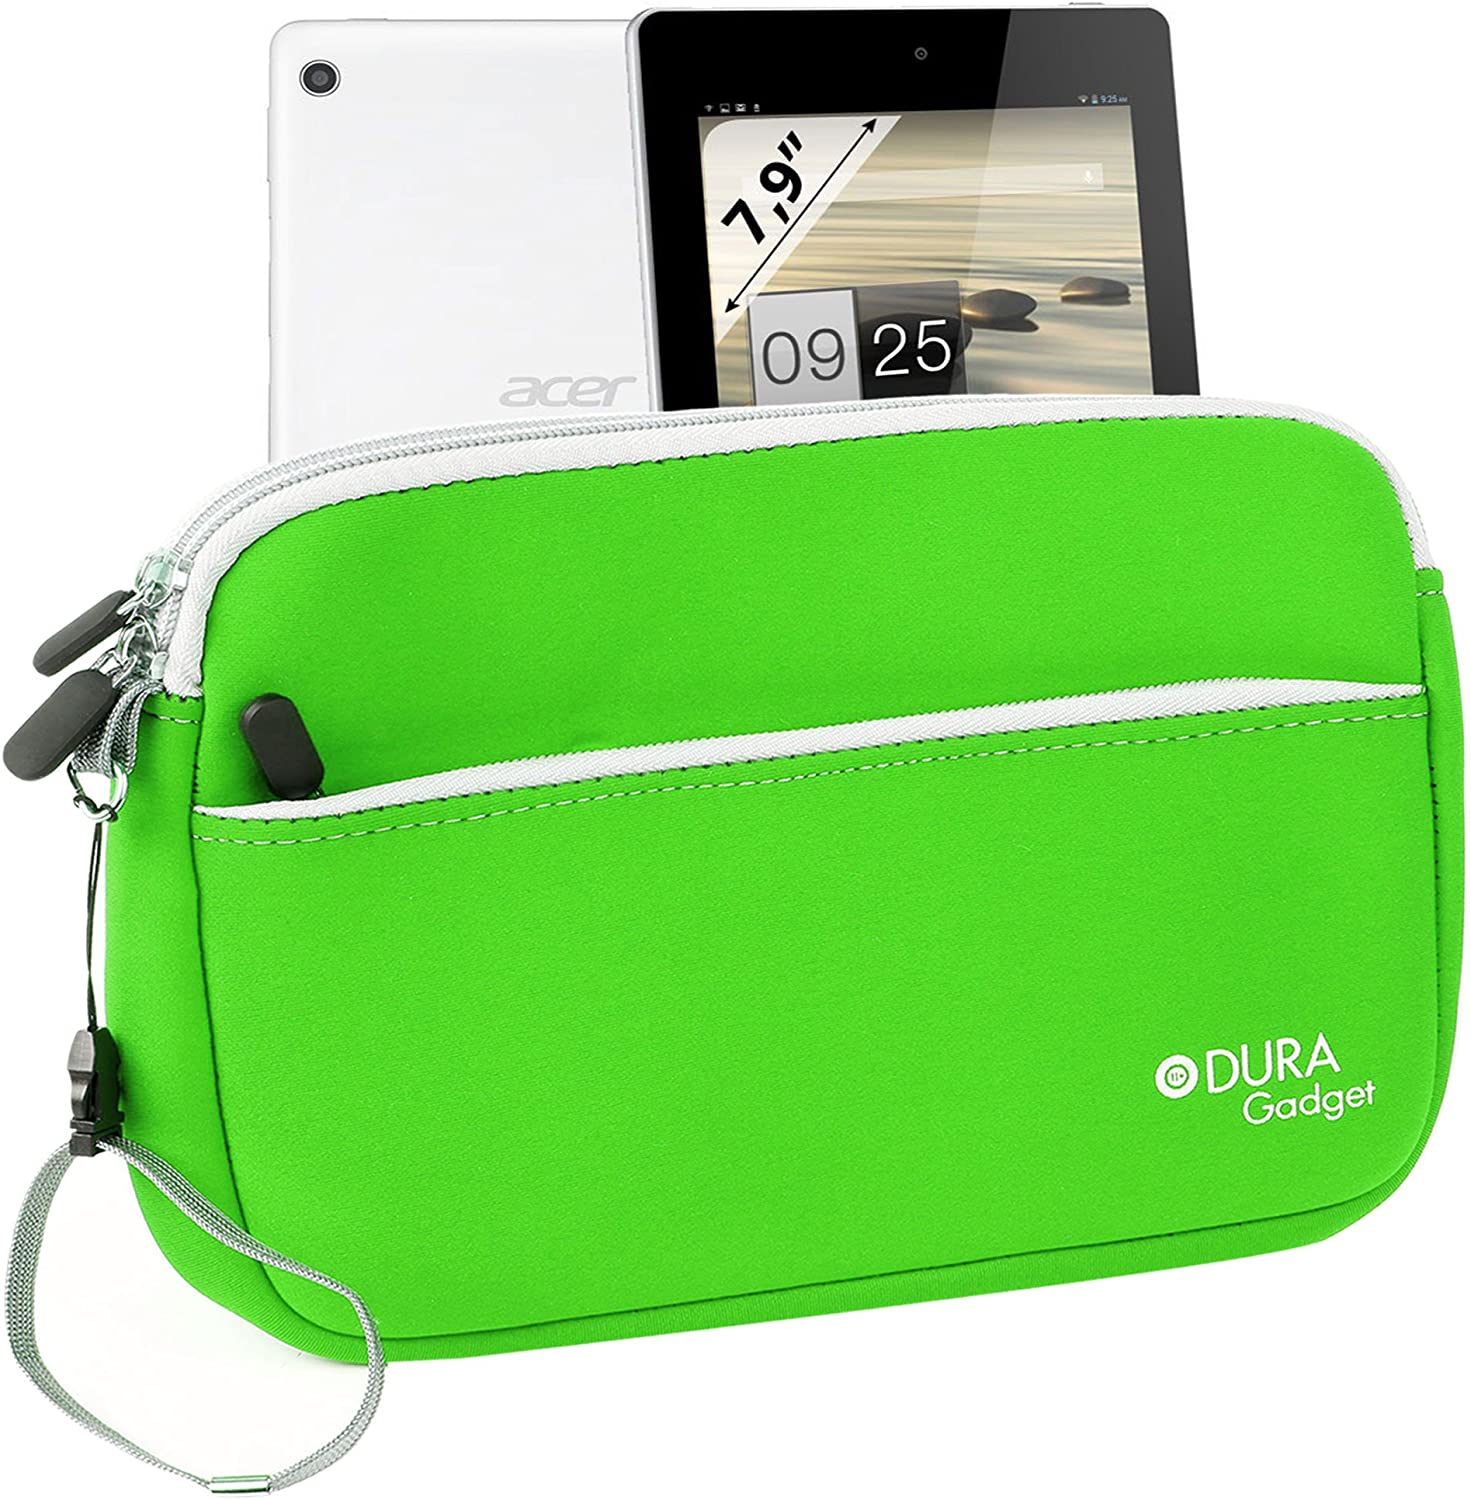 DURAGADGET Bright Green Neoprene Case w/Front Storage & Dual Zips - Compatible with Acer Iconia A1-810-L416 7.9-Inch Tablet